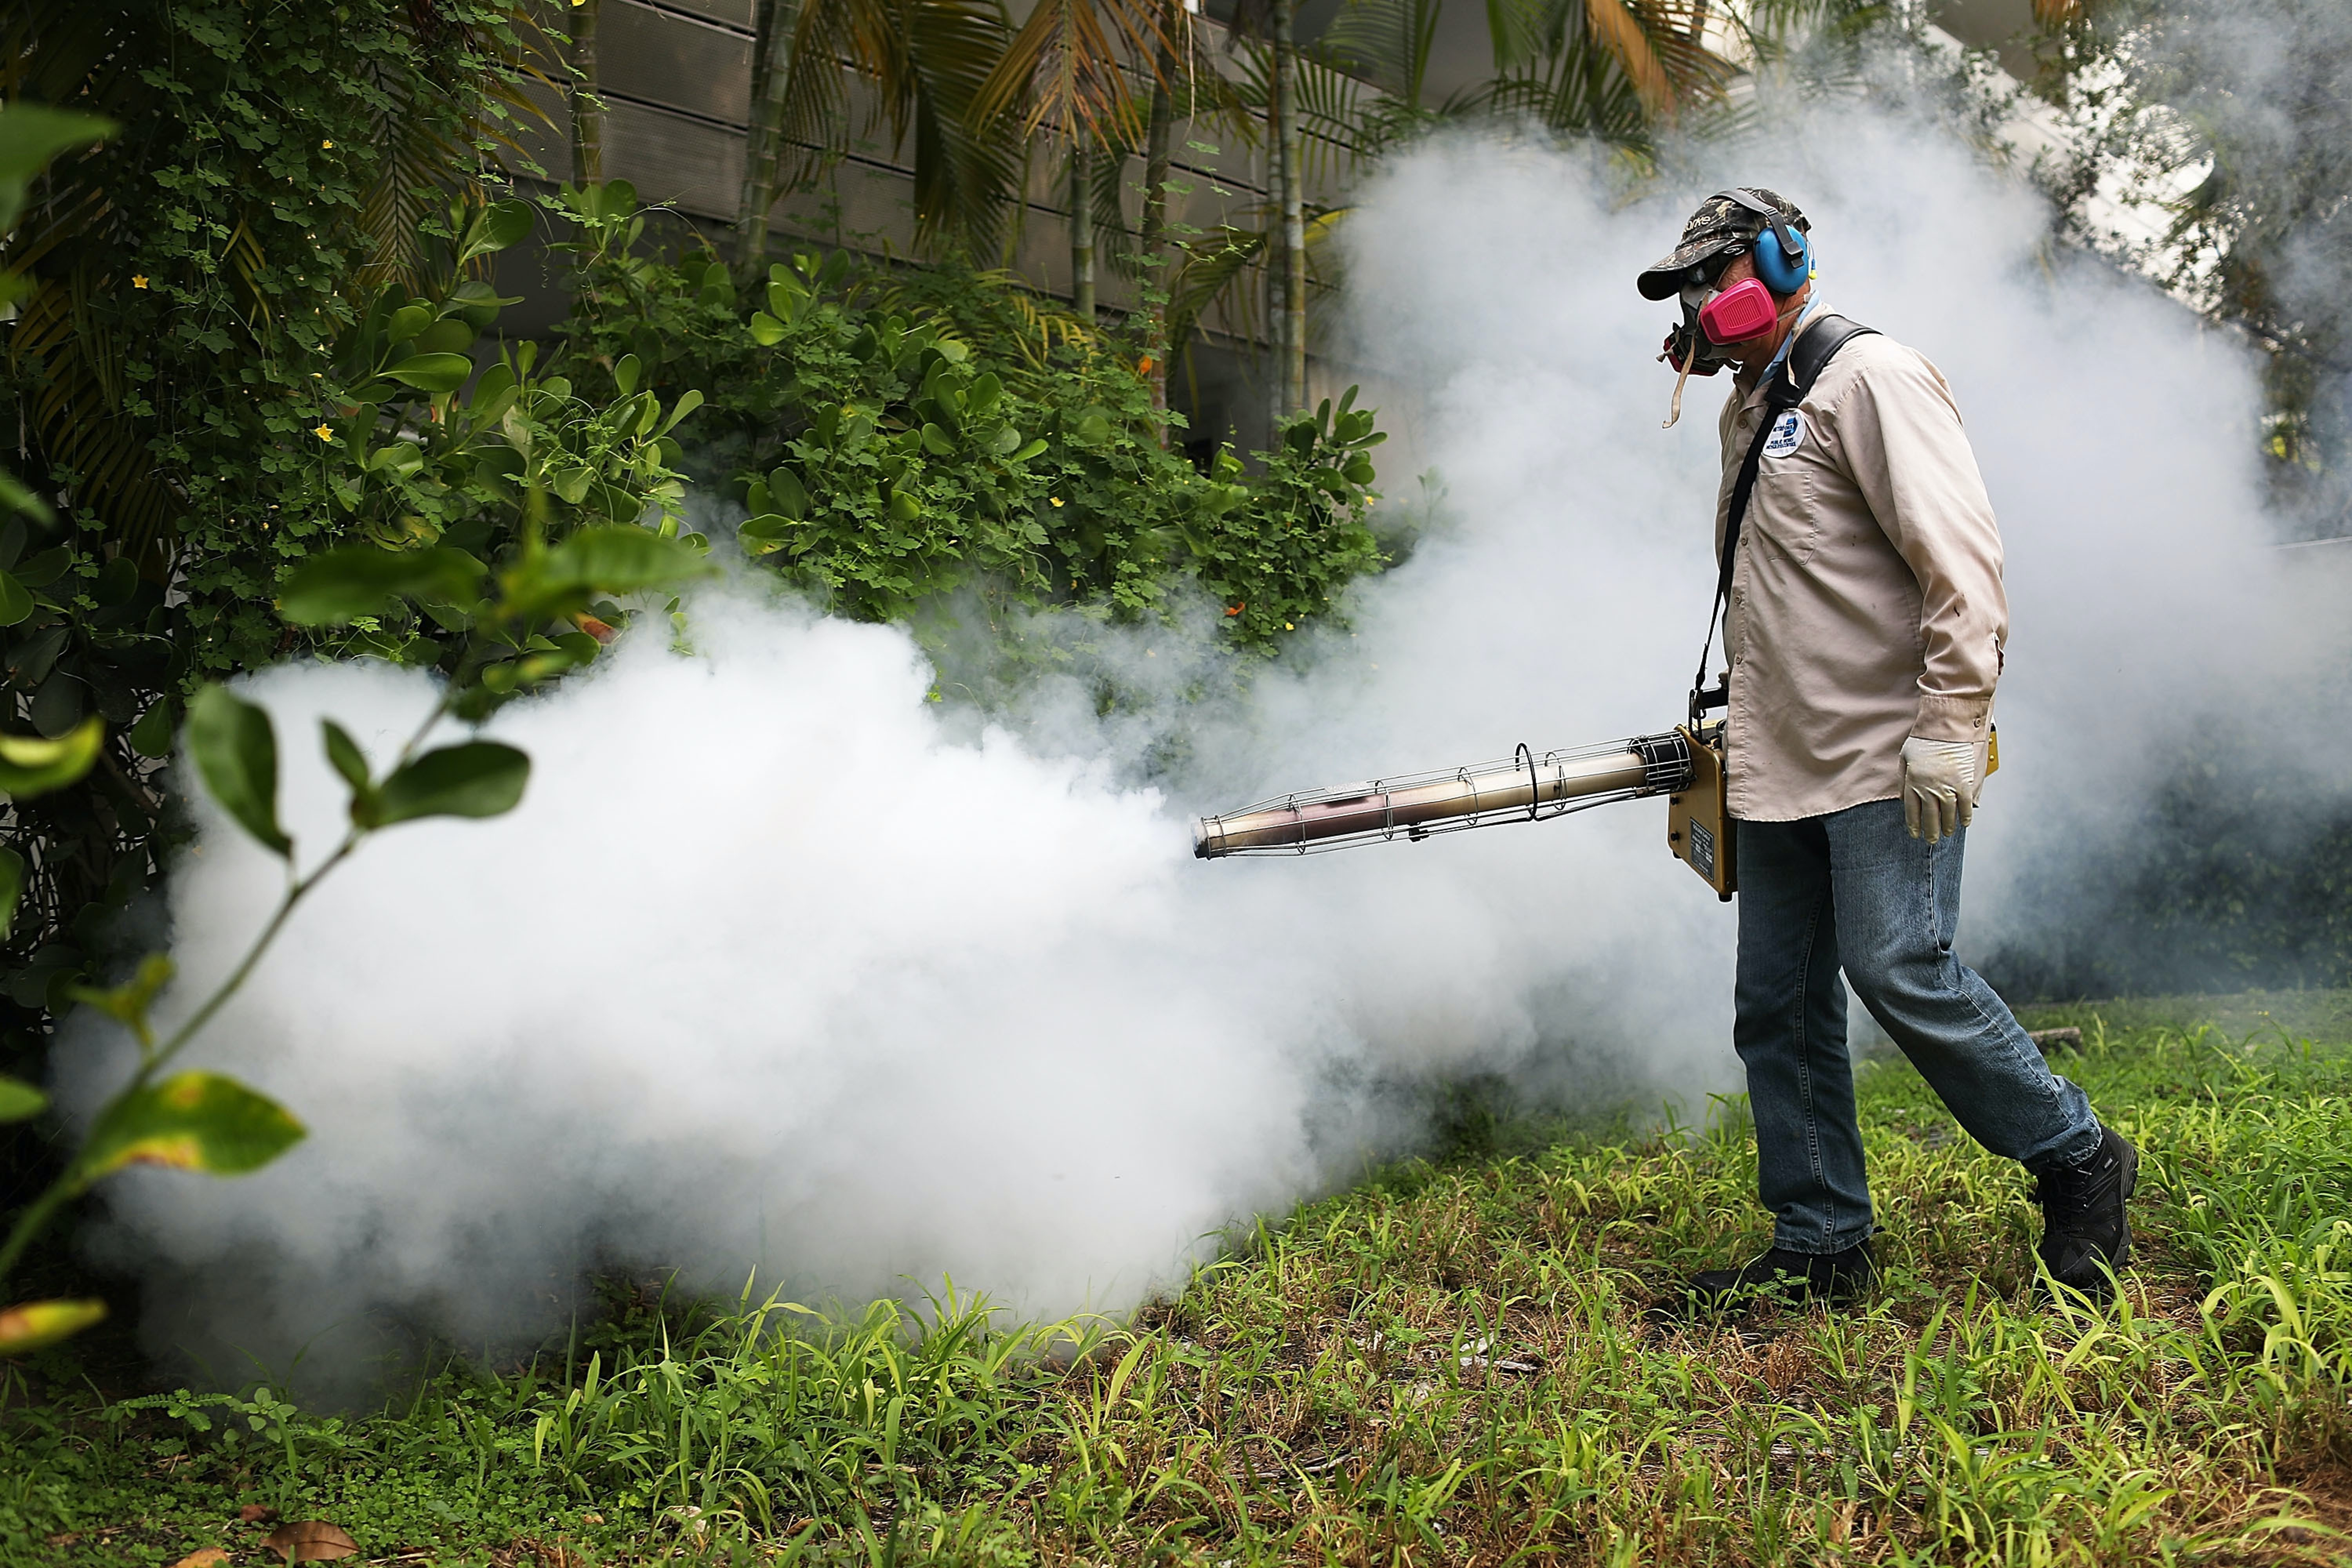 Carlos Varas, a Miami-Dade County mosquito control inspector, uses a Golden Eagle blower to spray pesticide to kill mosquitos in the Miami Beach neighborhood as the county fights to control the Zika virus outbreak on August 24.